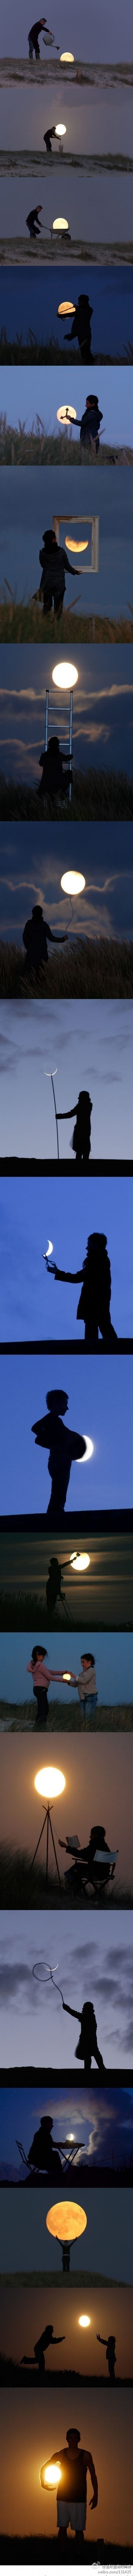 creative photos with the moon - love these!